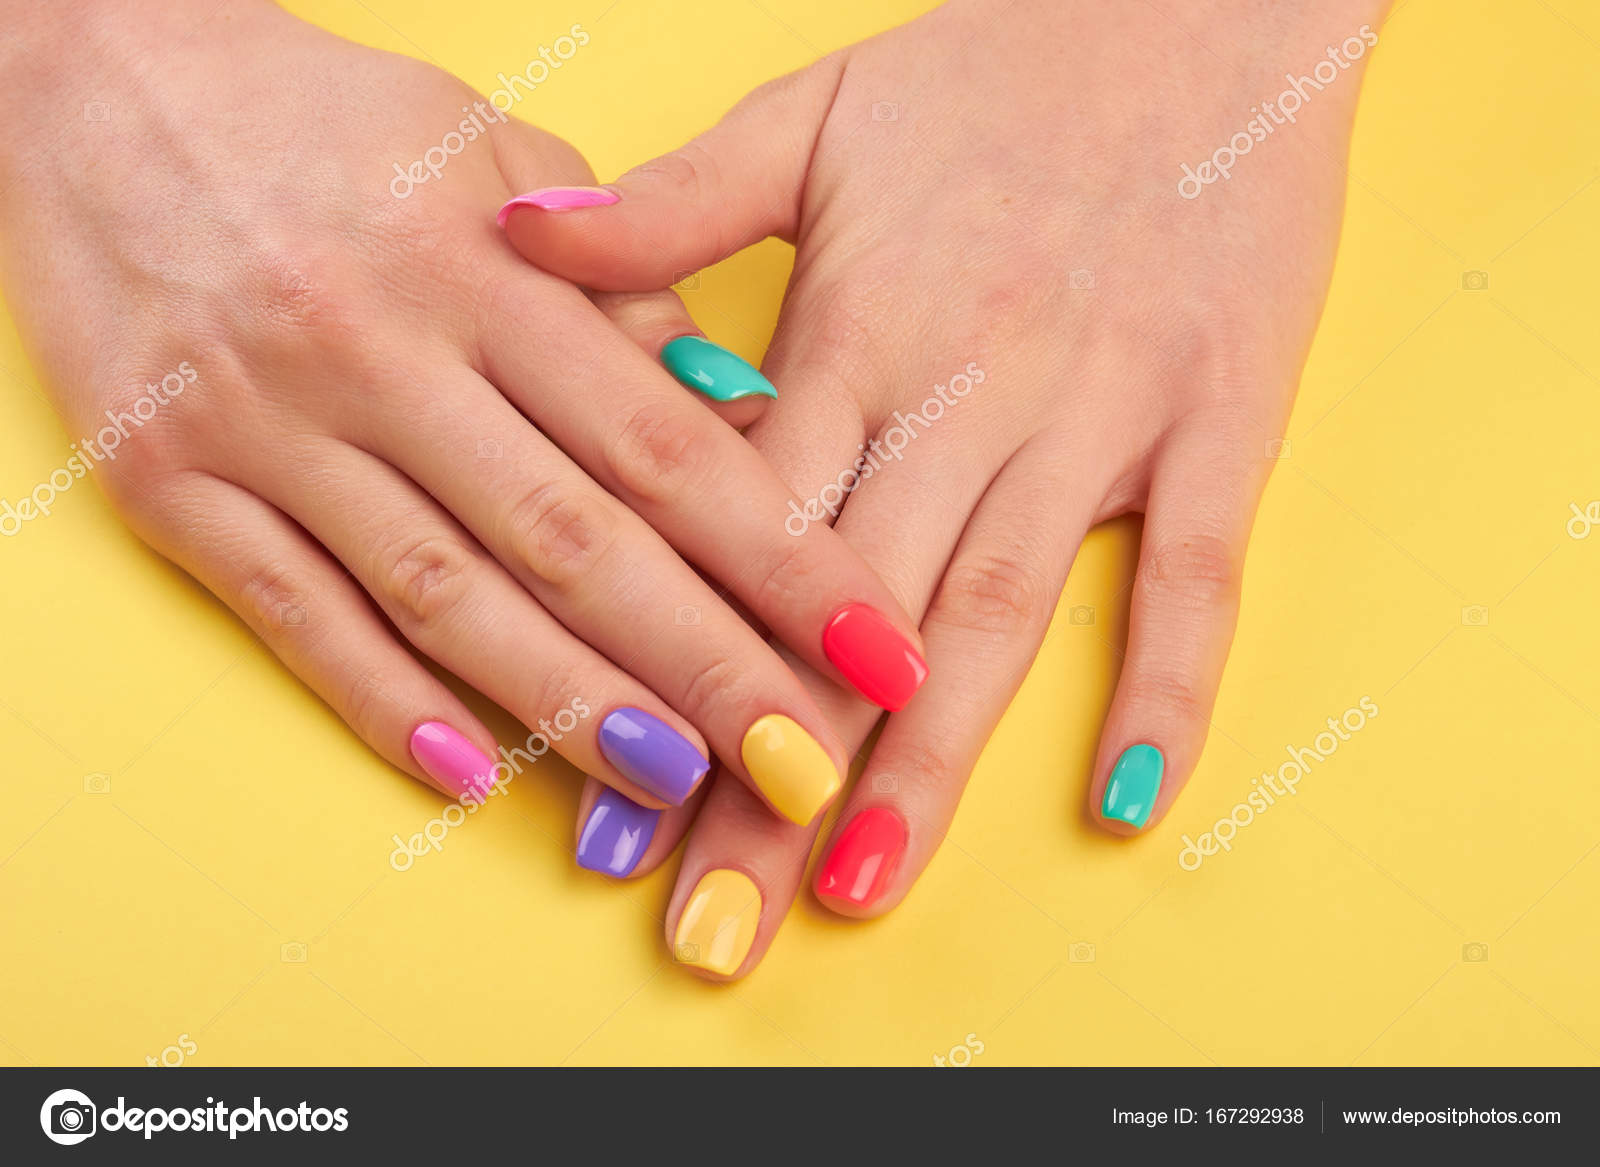 Woman Nails Painted In Different Colors Stock Photo C Denisfilm